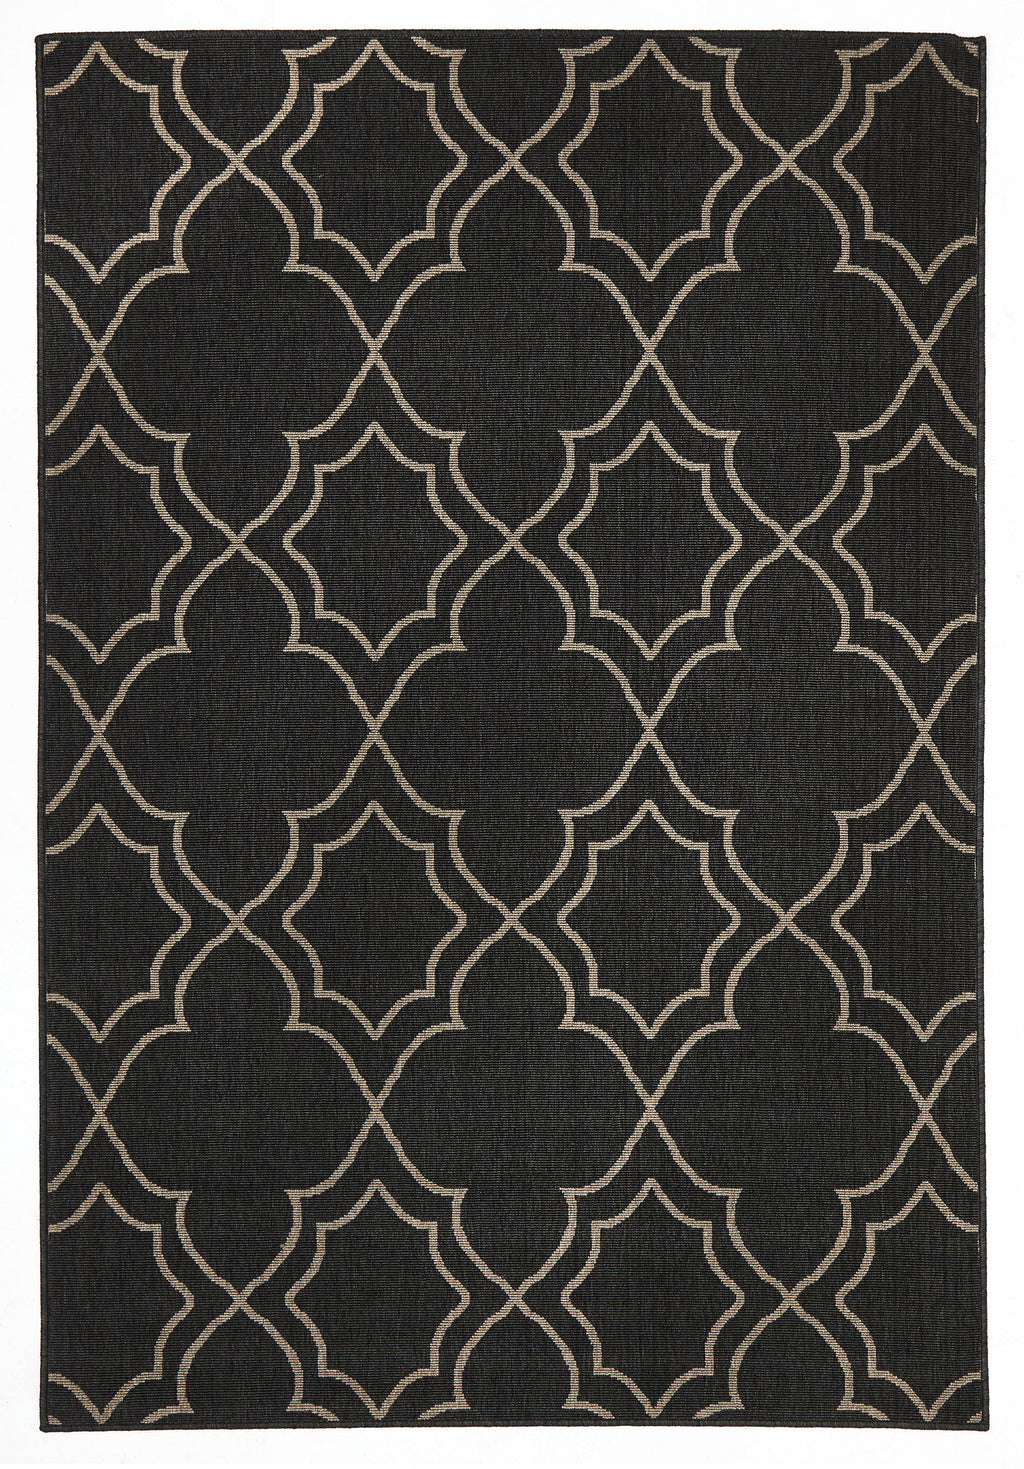 Malibu Casablanca Charcoal Outdoor Rug